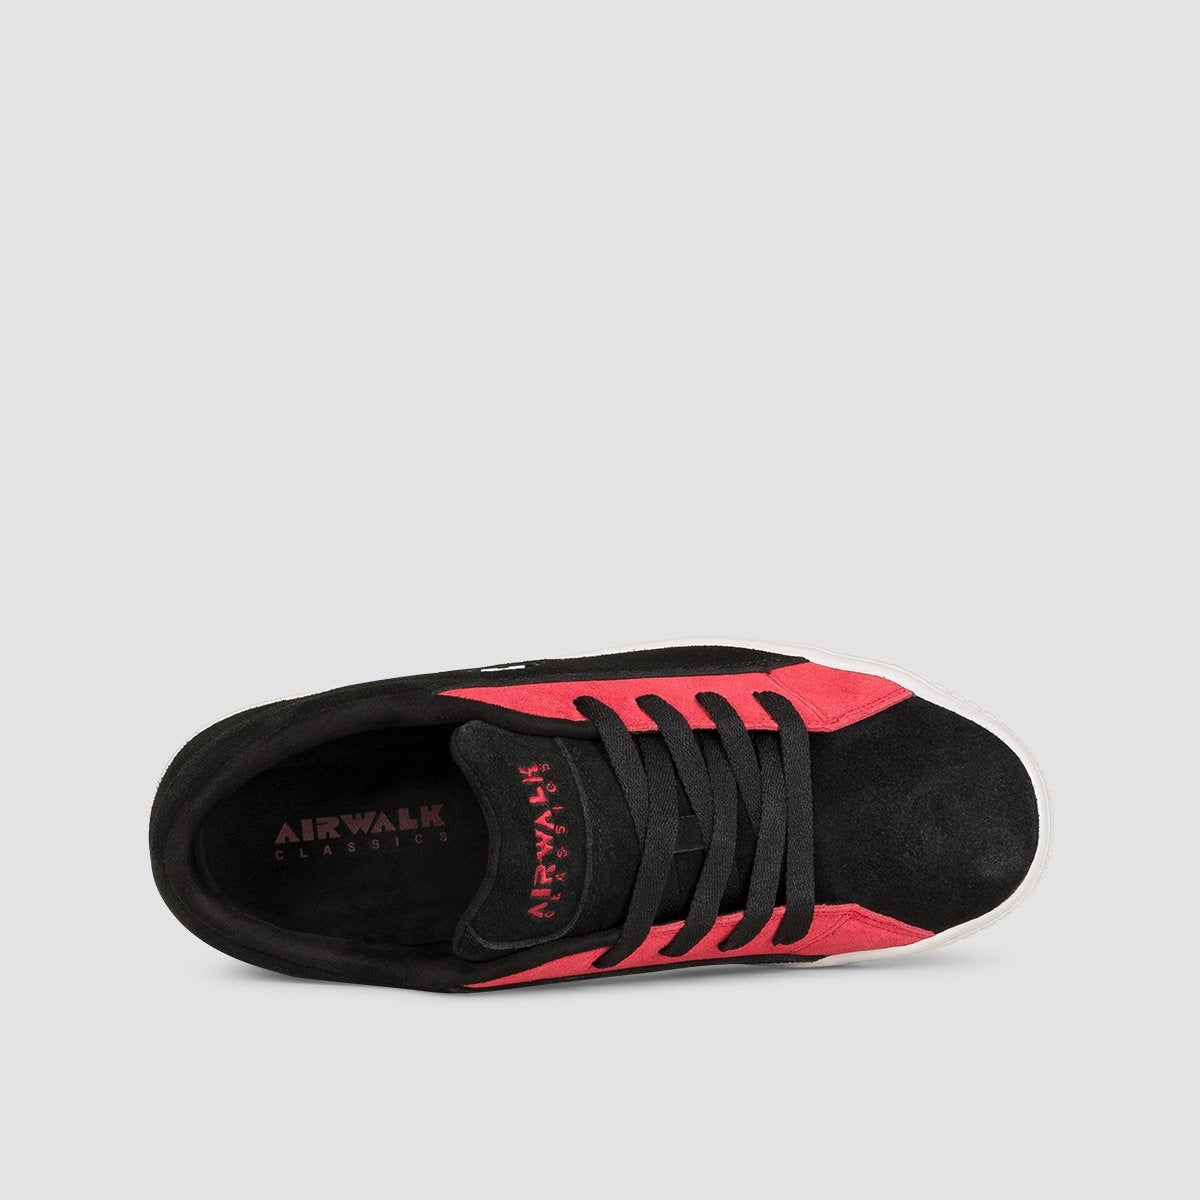 Airwalk The One Chance Black Red - Footwear